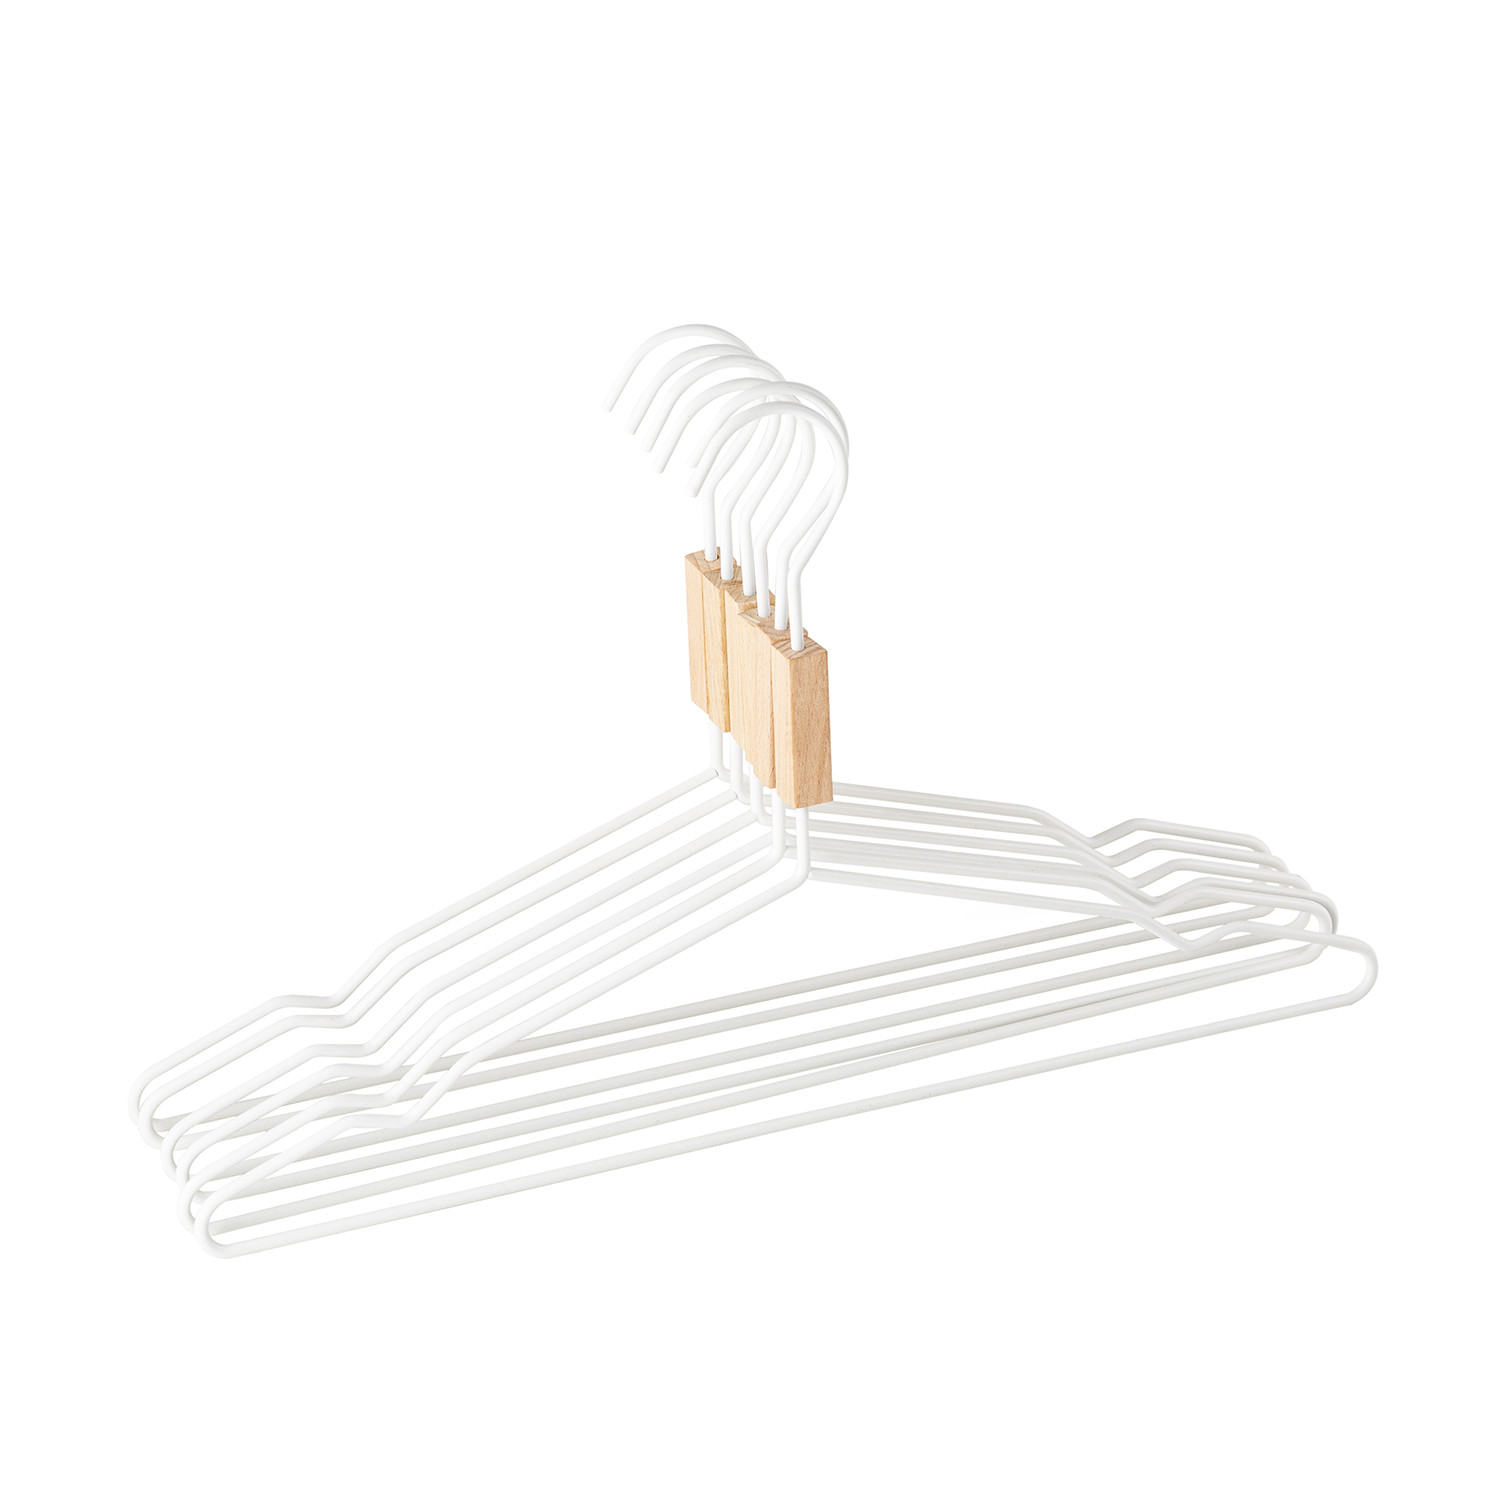 Set of 6 Säly Hangers, gallery image 1